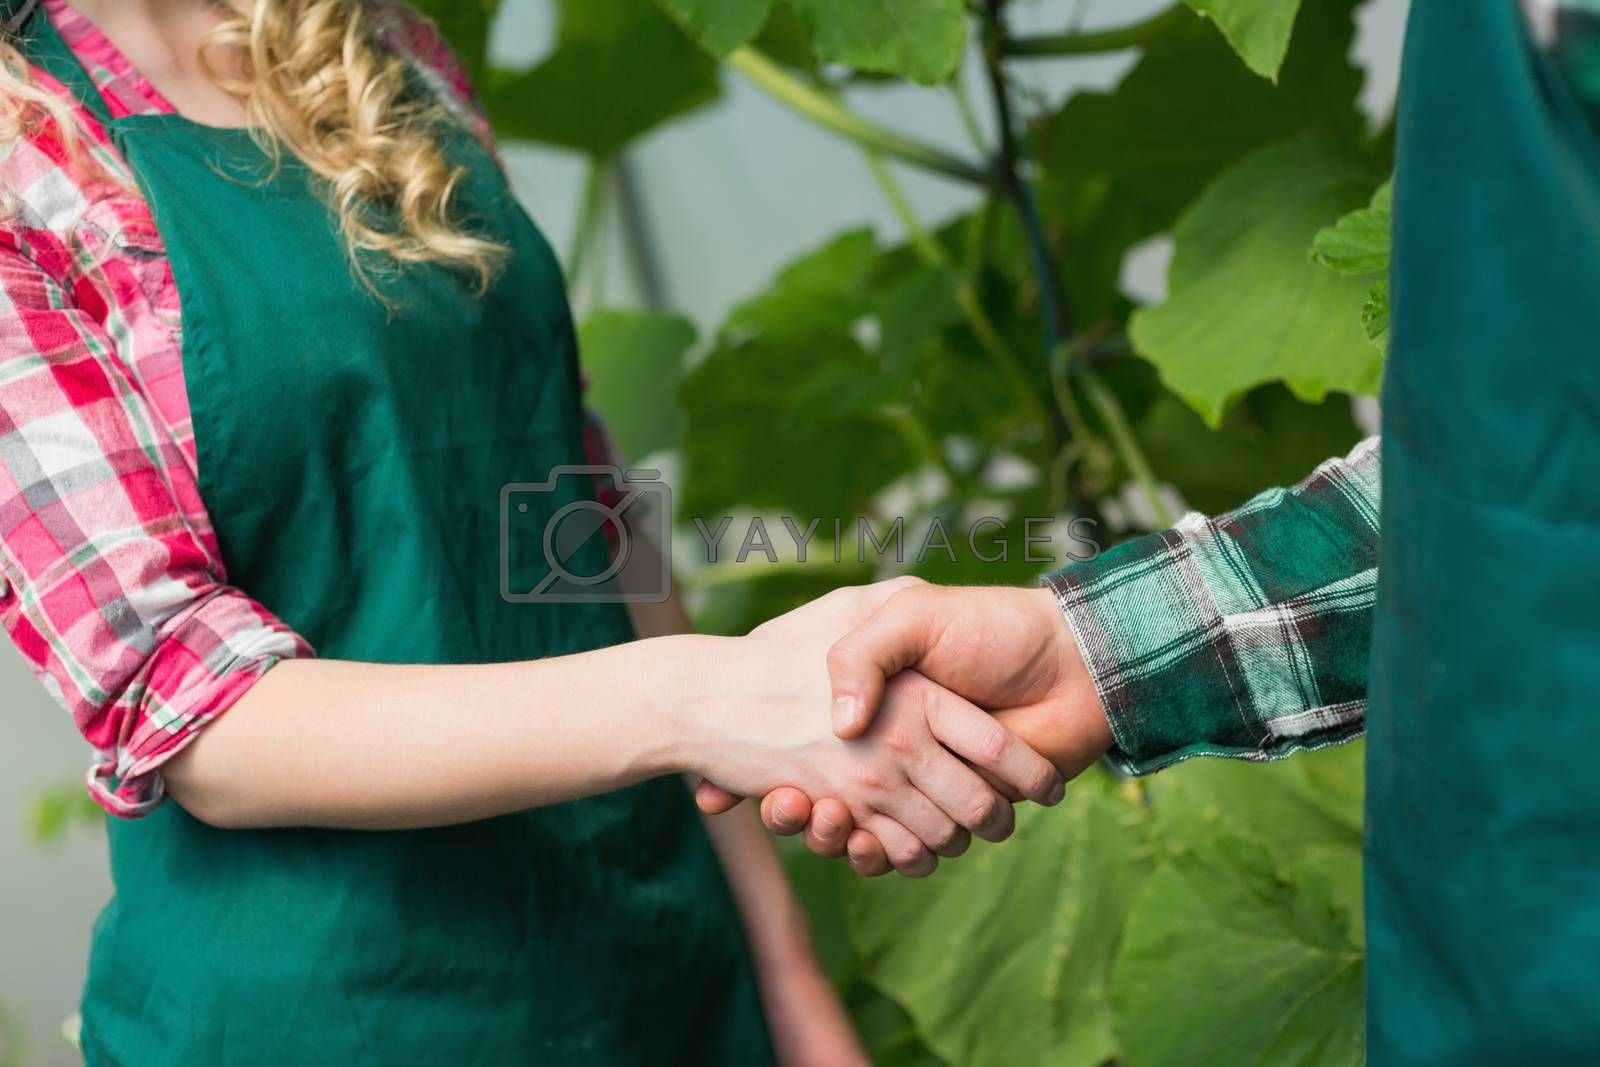 Two people shaking hands in a green house